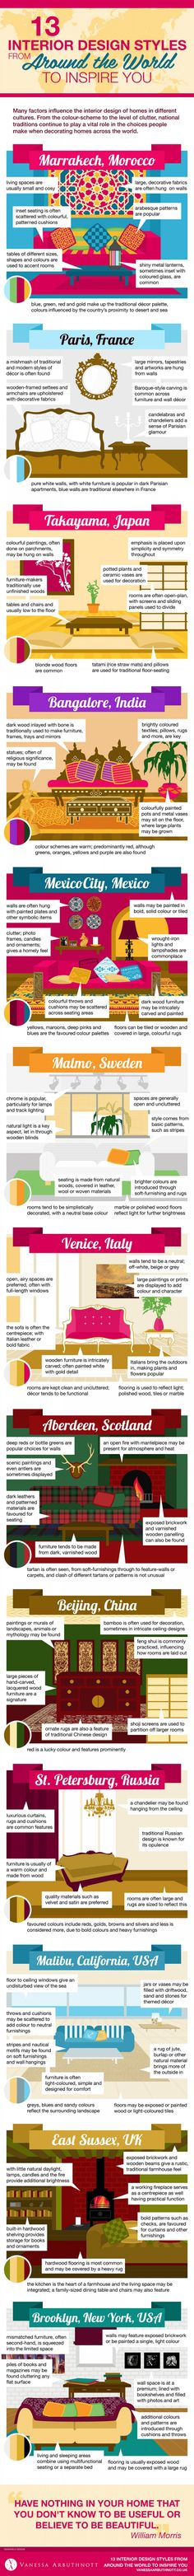 13 Interior Design Styles From Around The World To Inspire You #infographic…